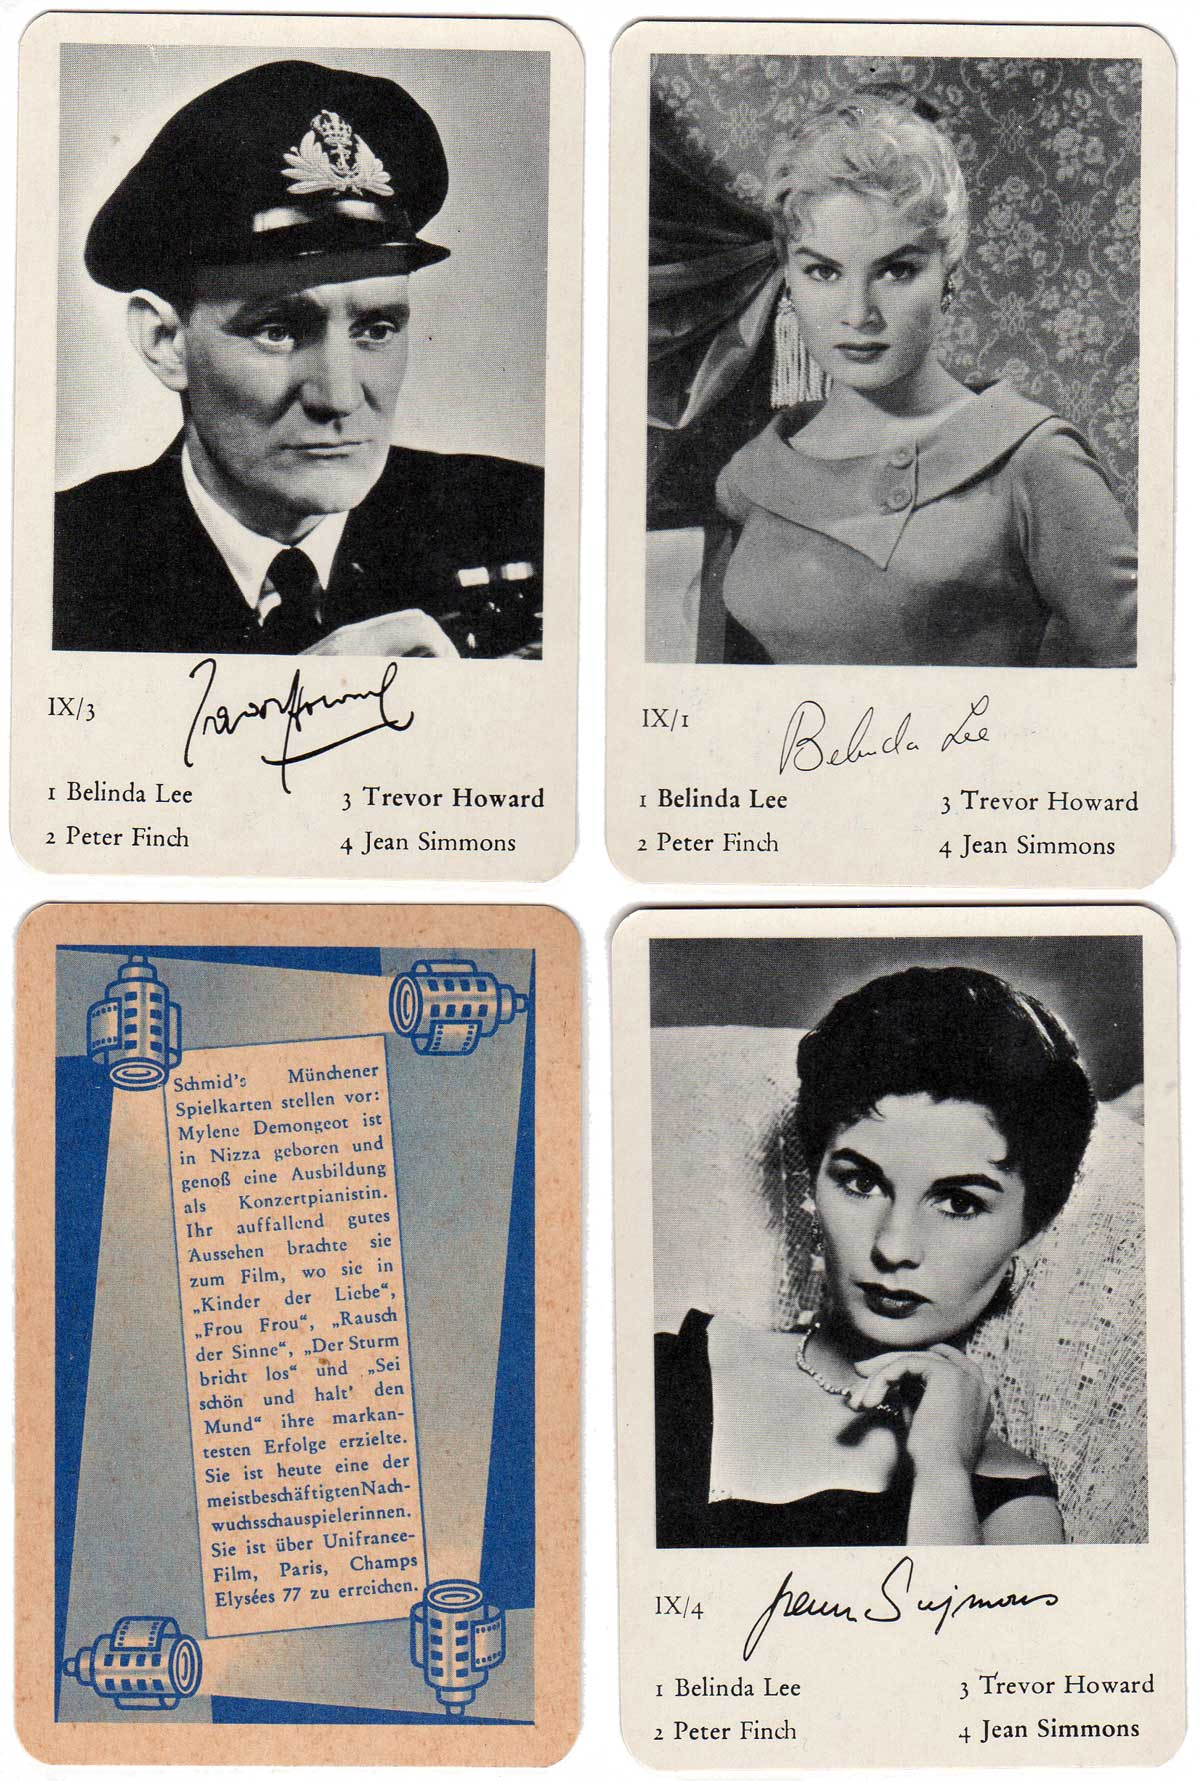 Filmstars Quartet card game published by Schmid, Munich, c.1960